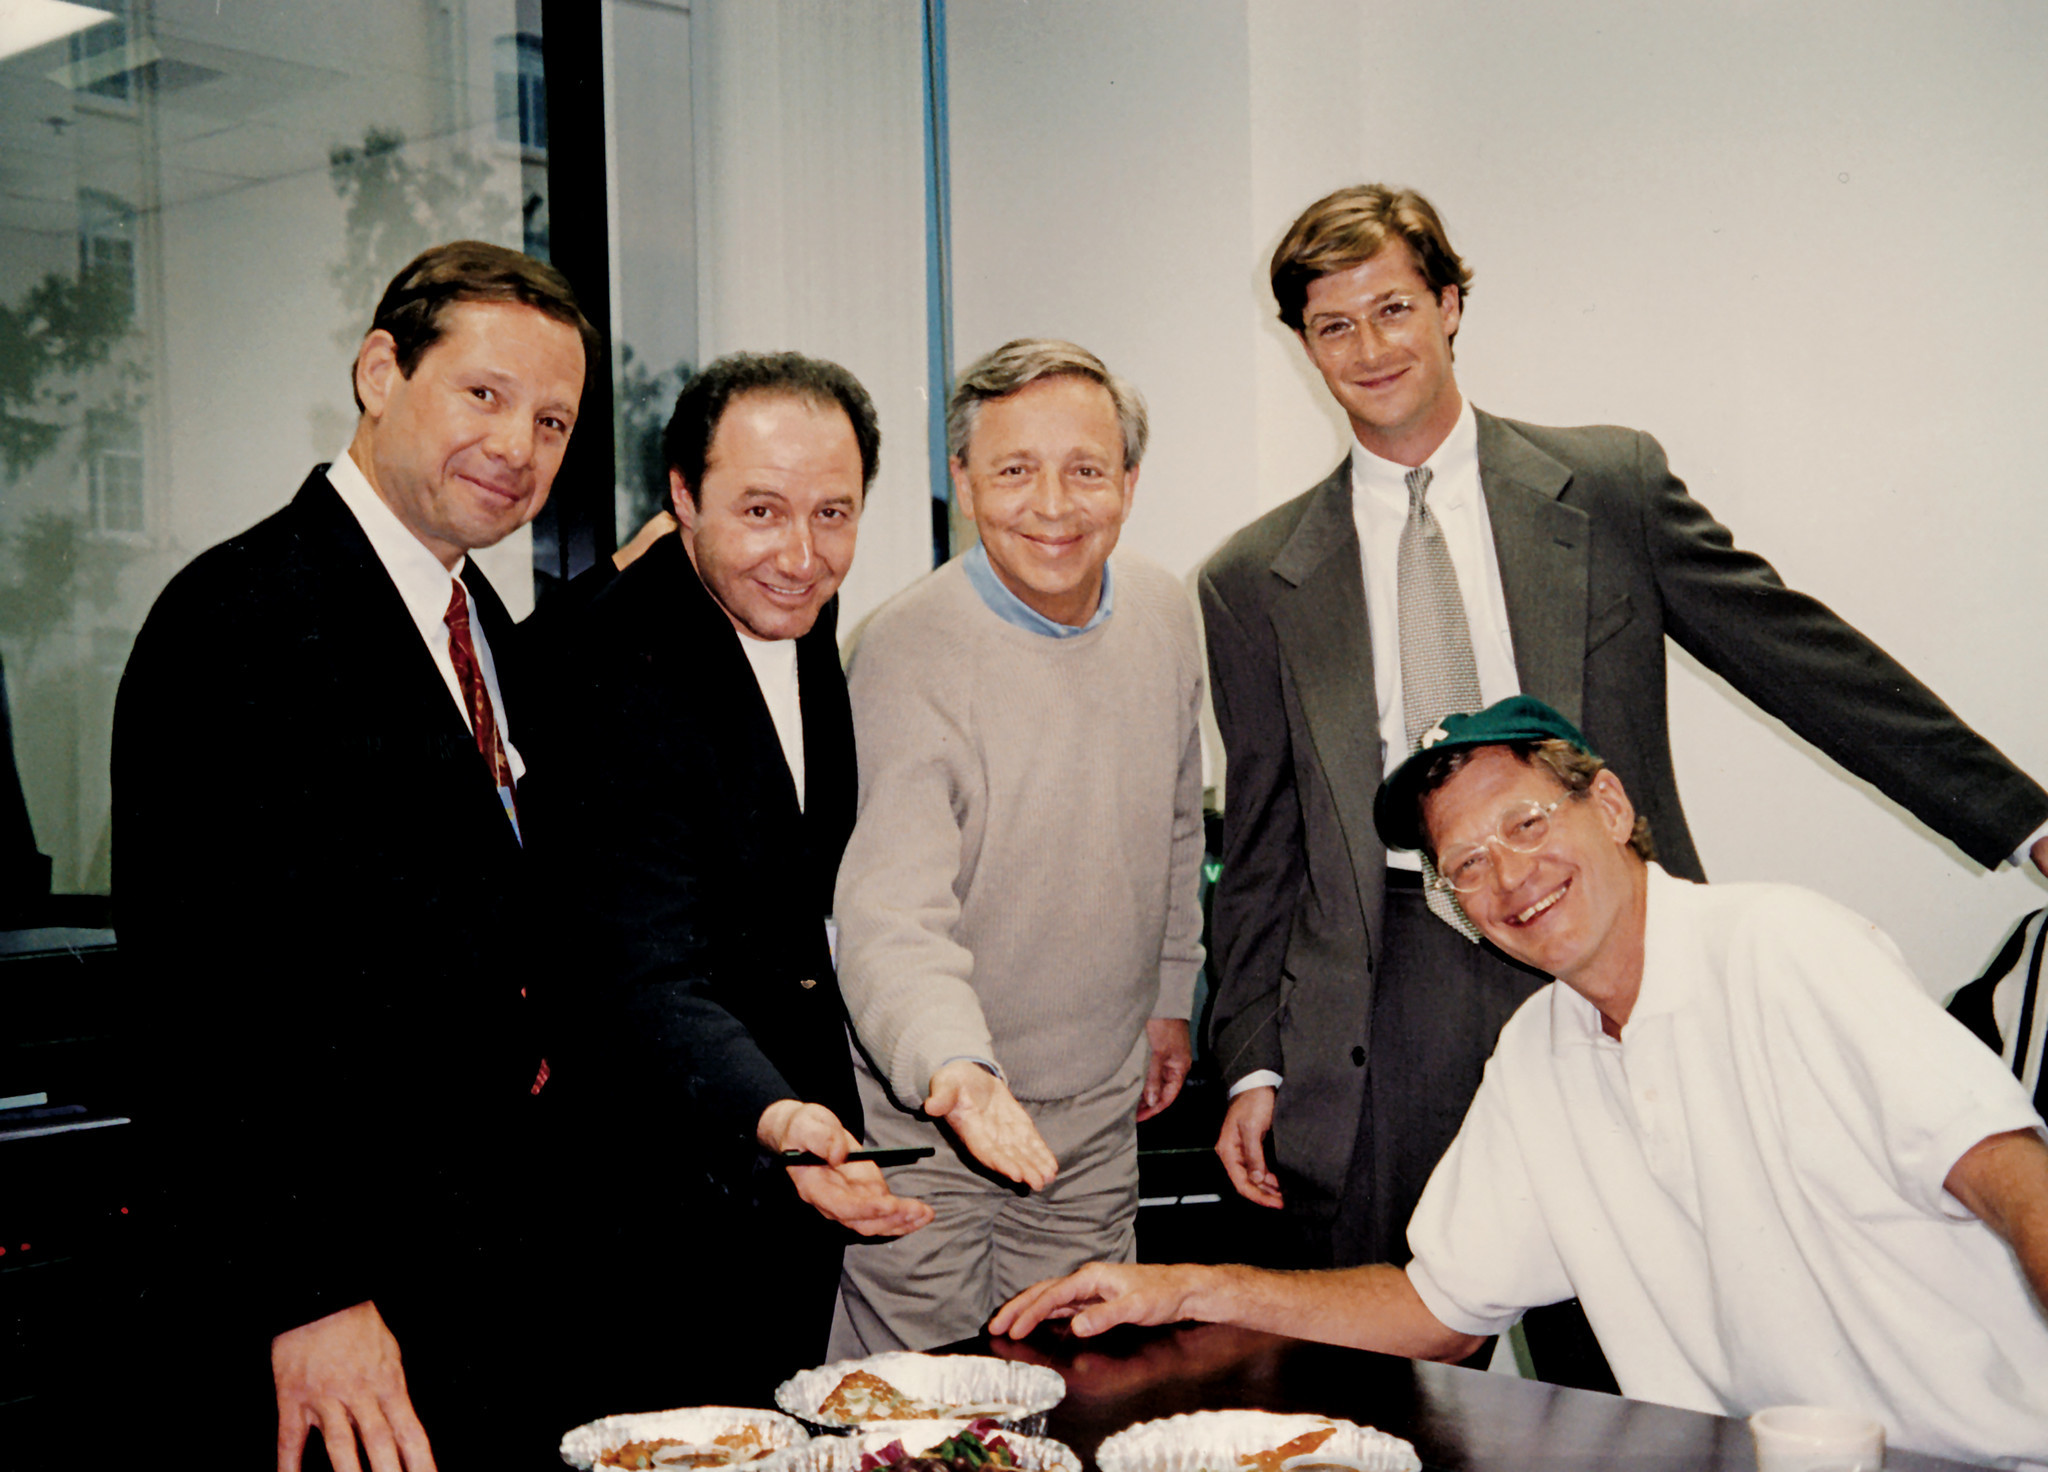 Mike Ovitz in David Letterman's new office at CBS after his deal closed. Ovitz, left, Robert Morton, Peter Lassally, Jay Maloney and Letterman.